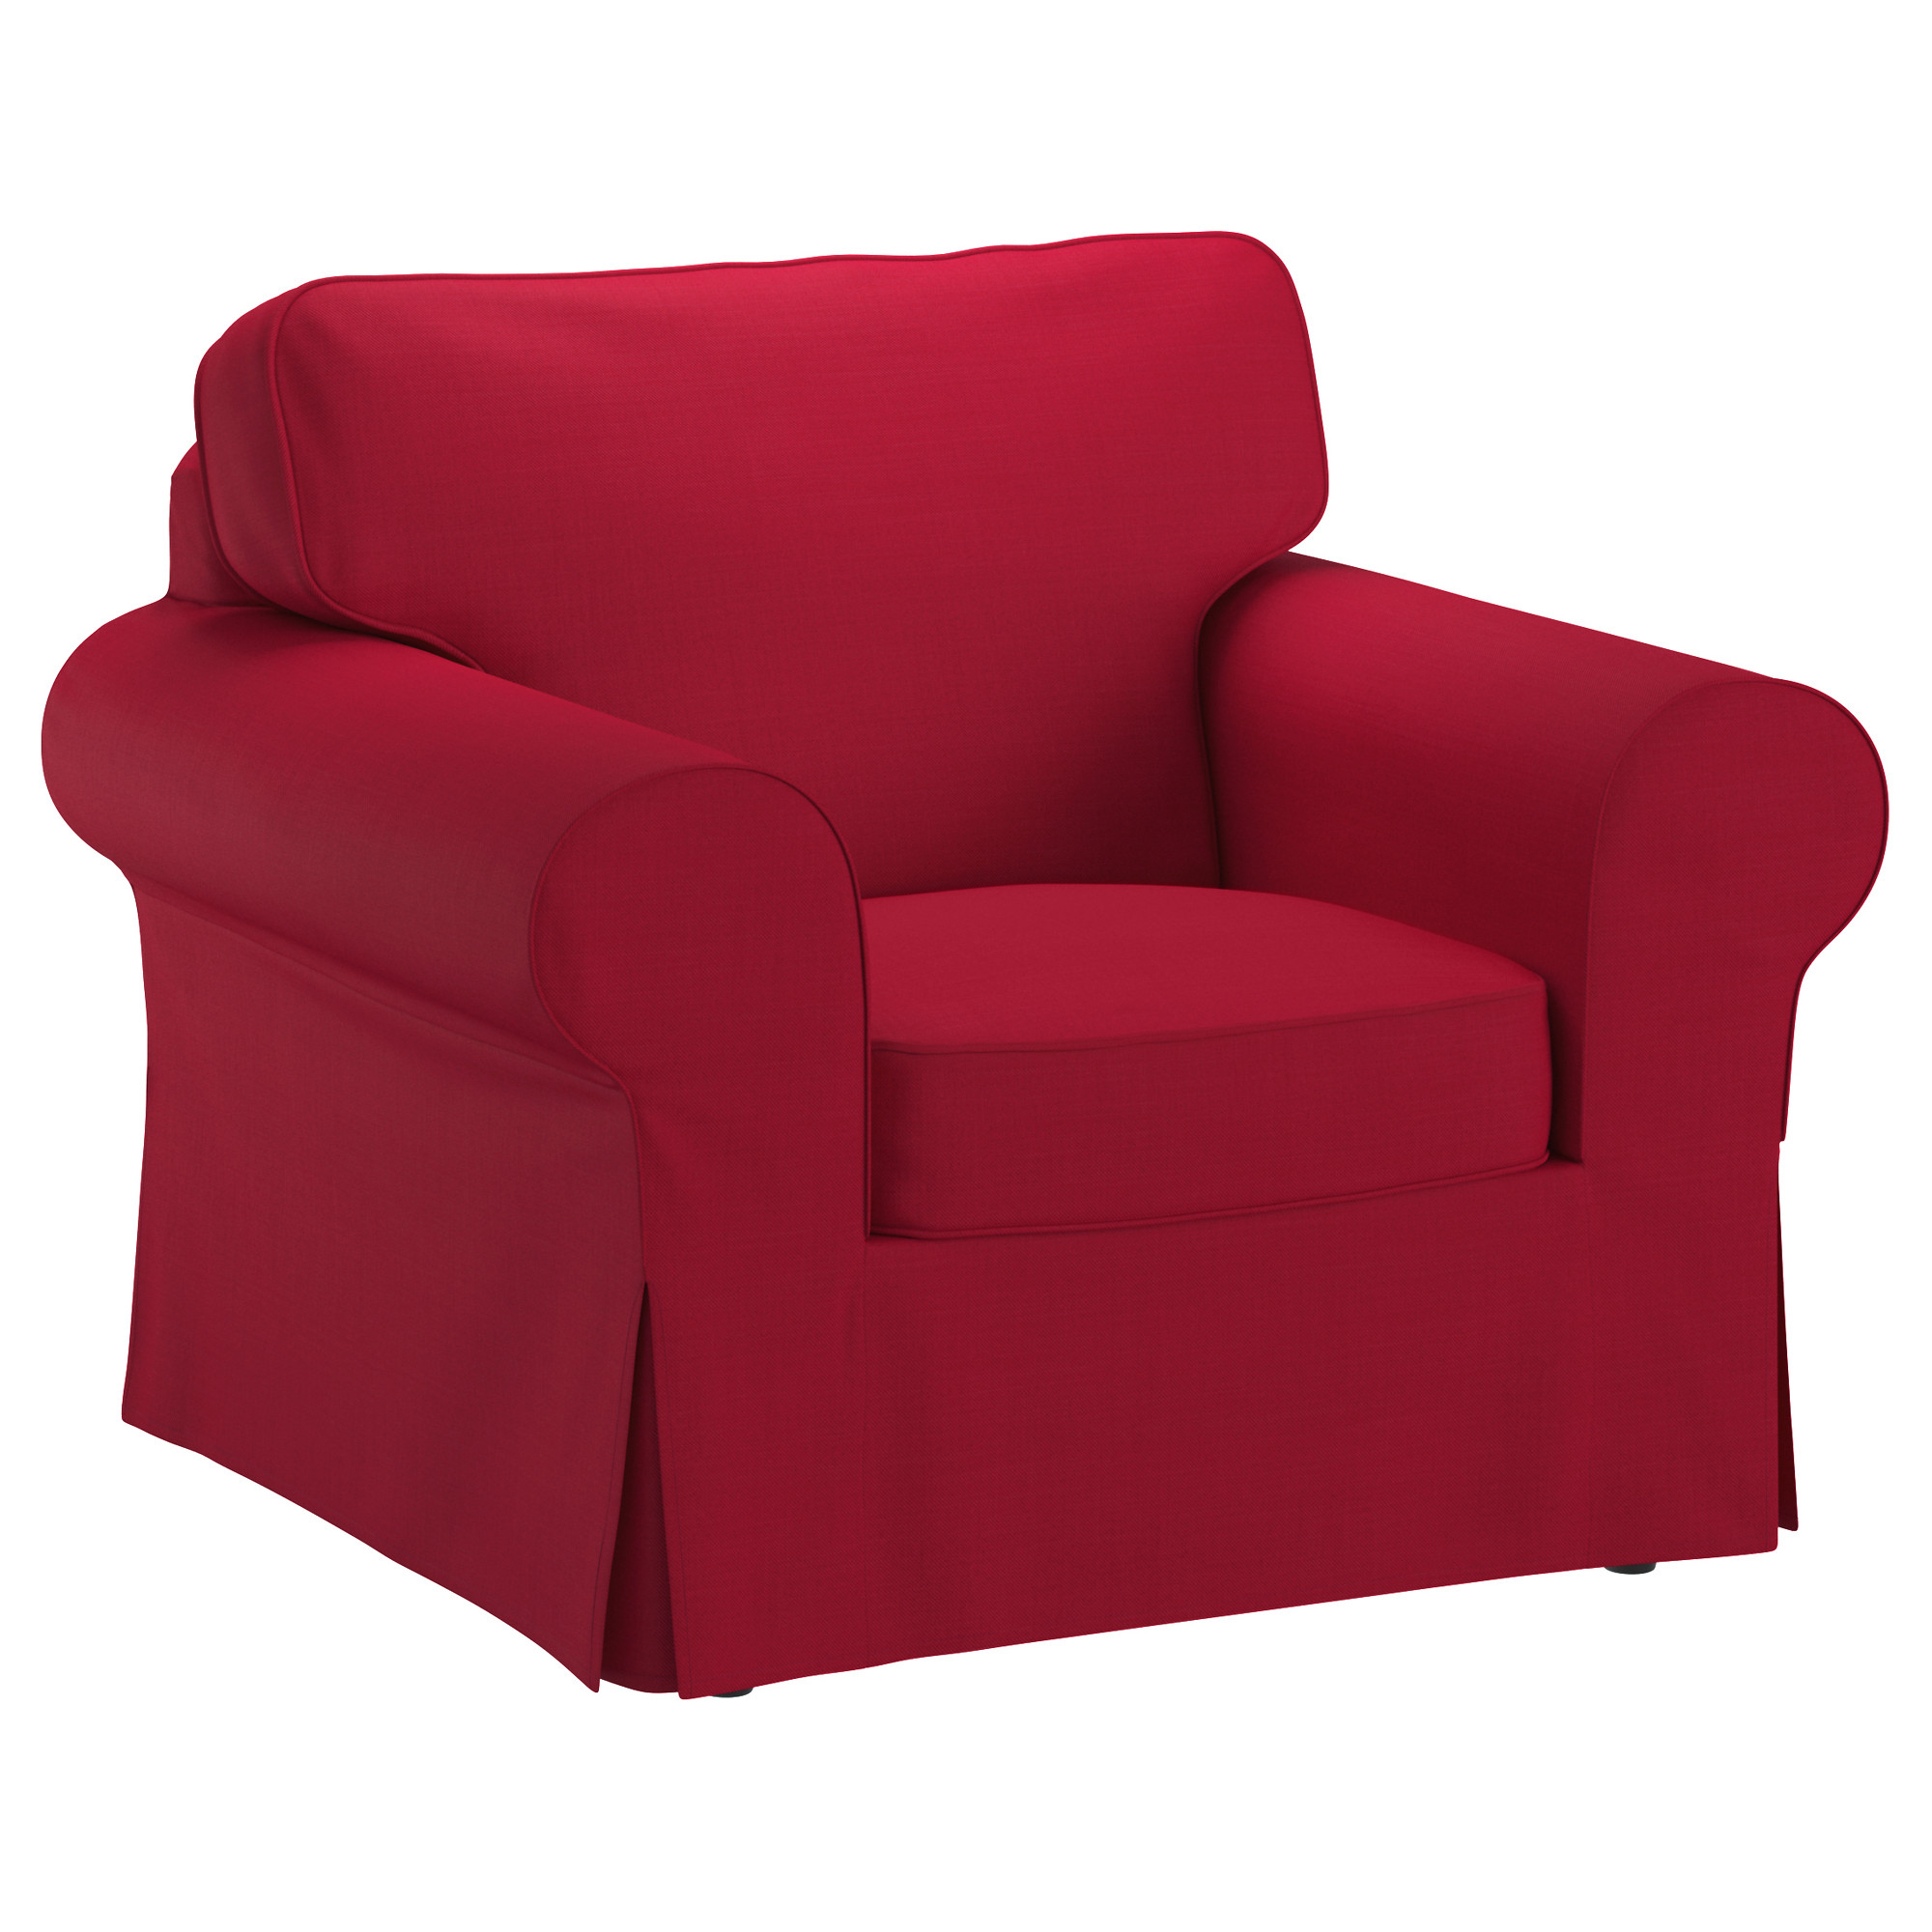 Well Known Red Sofas And Chairs Within Ikea Ektorp Armchair The Cover Is Easy To Keep Clean As It Is (View 19 of 20)